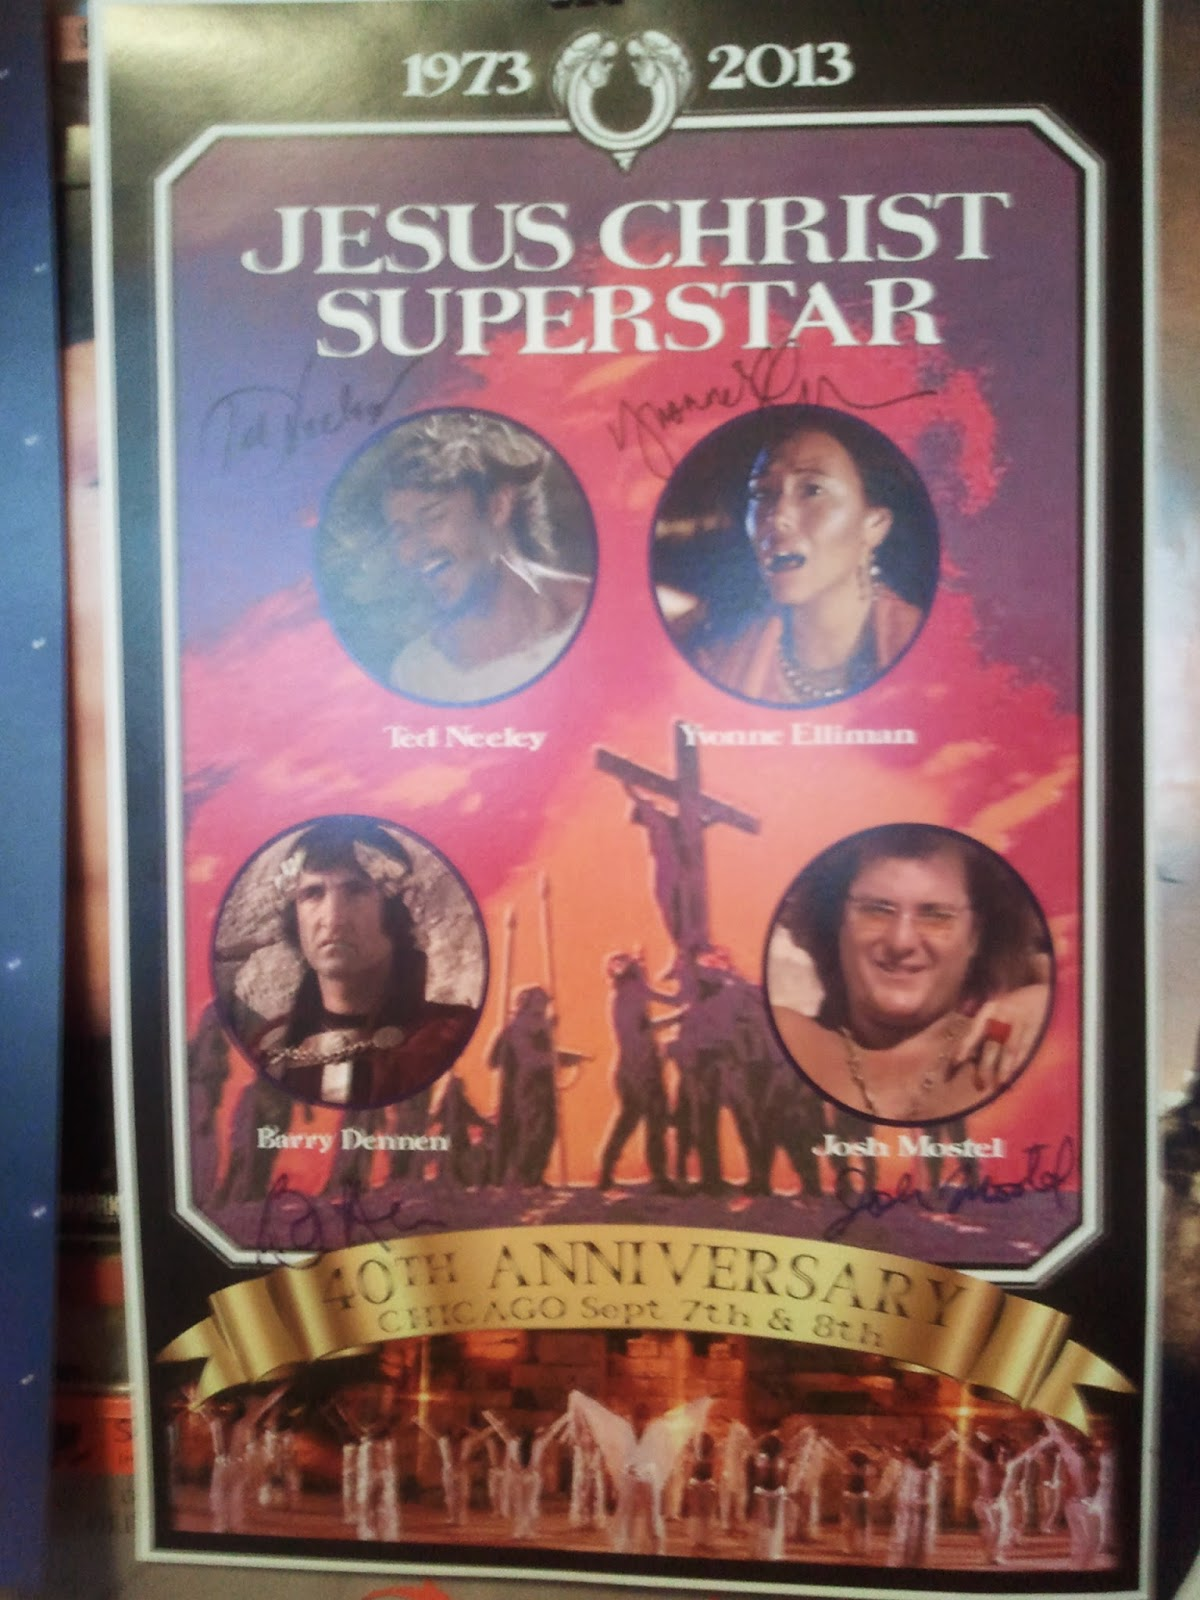 Jesus Christ Superstar Celebration at the Arclight Hollywood